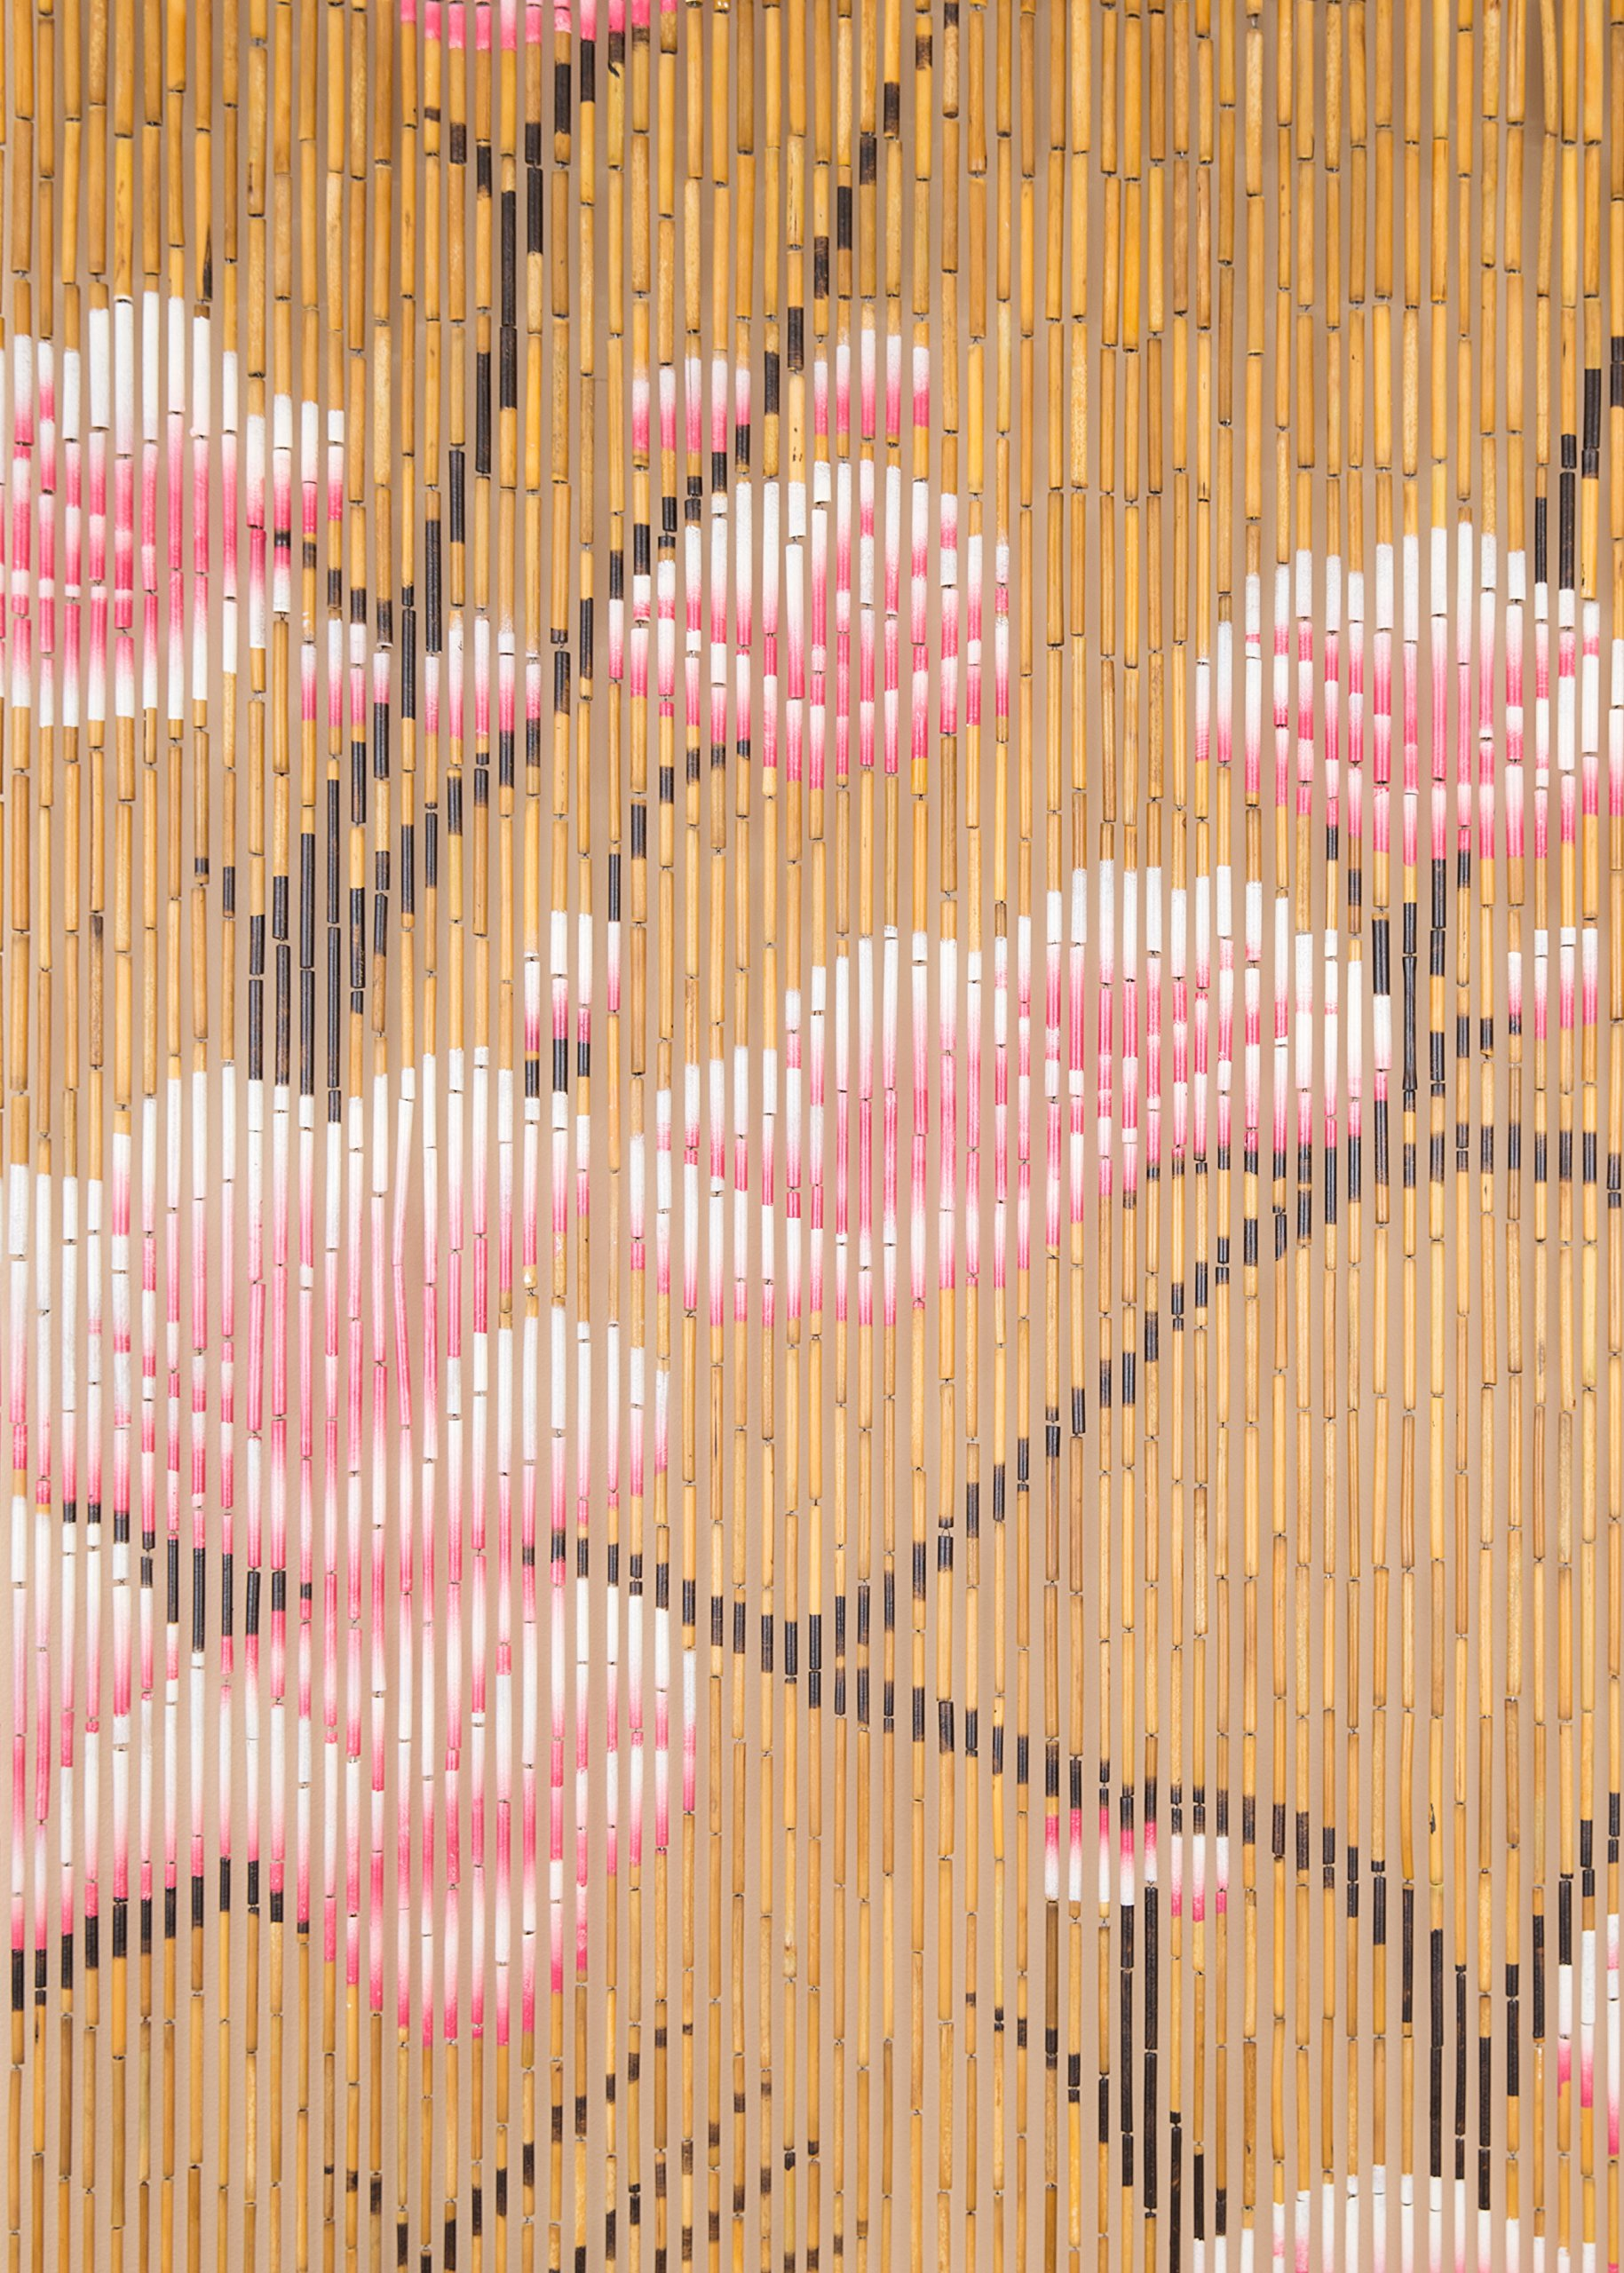 BeadedString Natural Bamboo Wood Beaded Curtain-90 Starnds-80 High-Boho Door Beads-Bohemian Doorway Curtain-35.5'' Wx80 H-Blossom by BeadedString (Image #8)